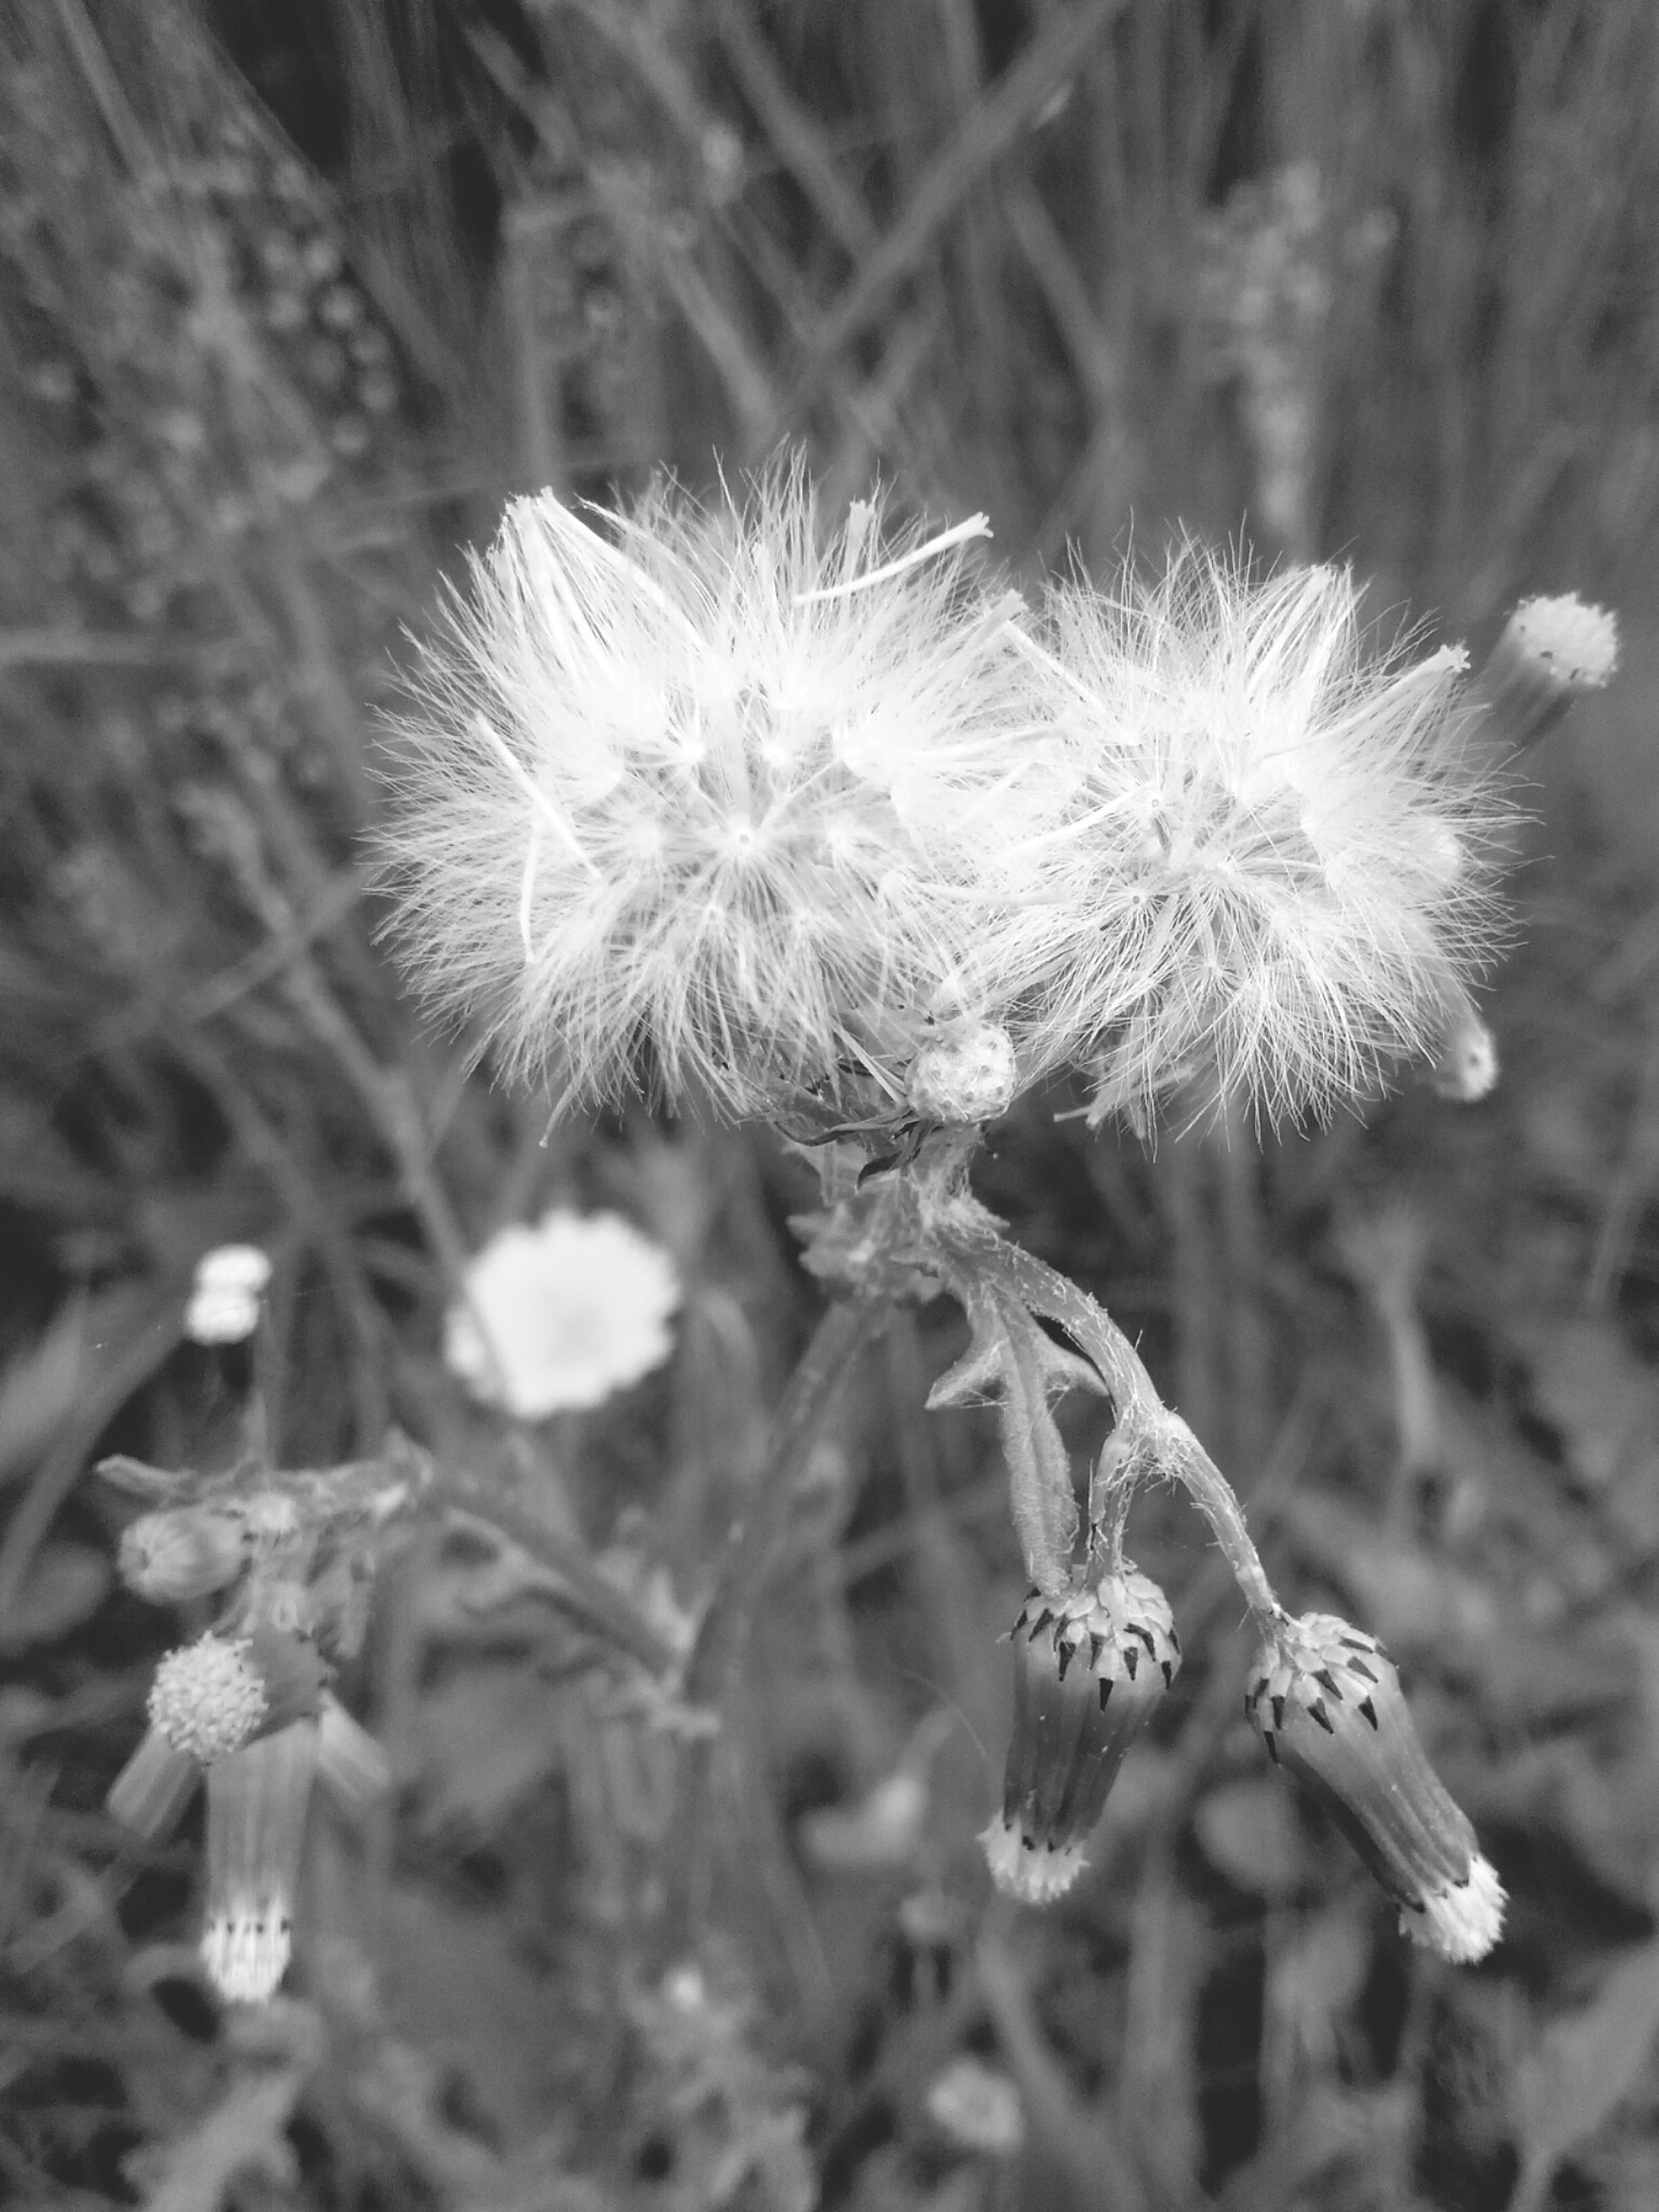 flower, fragility, growth, freshness, close-up, flower head, focus on foreground, beauty in nature, nature, plant, stem, petal, blooming, dandelion, in bloom, wildflower, white color, pollen, selective focus, outdoors